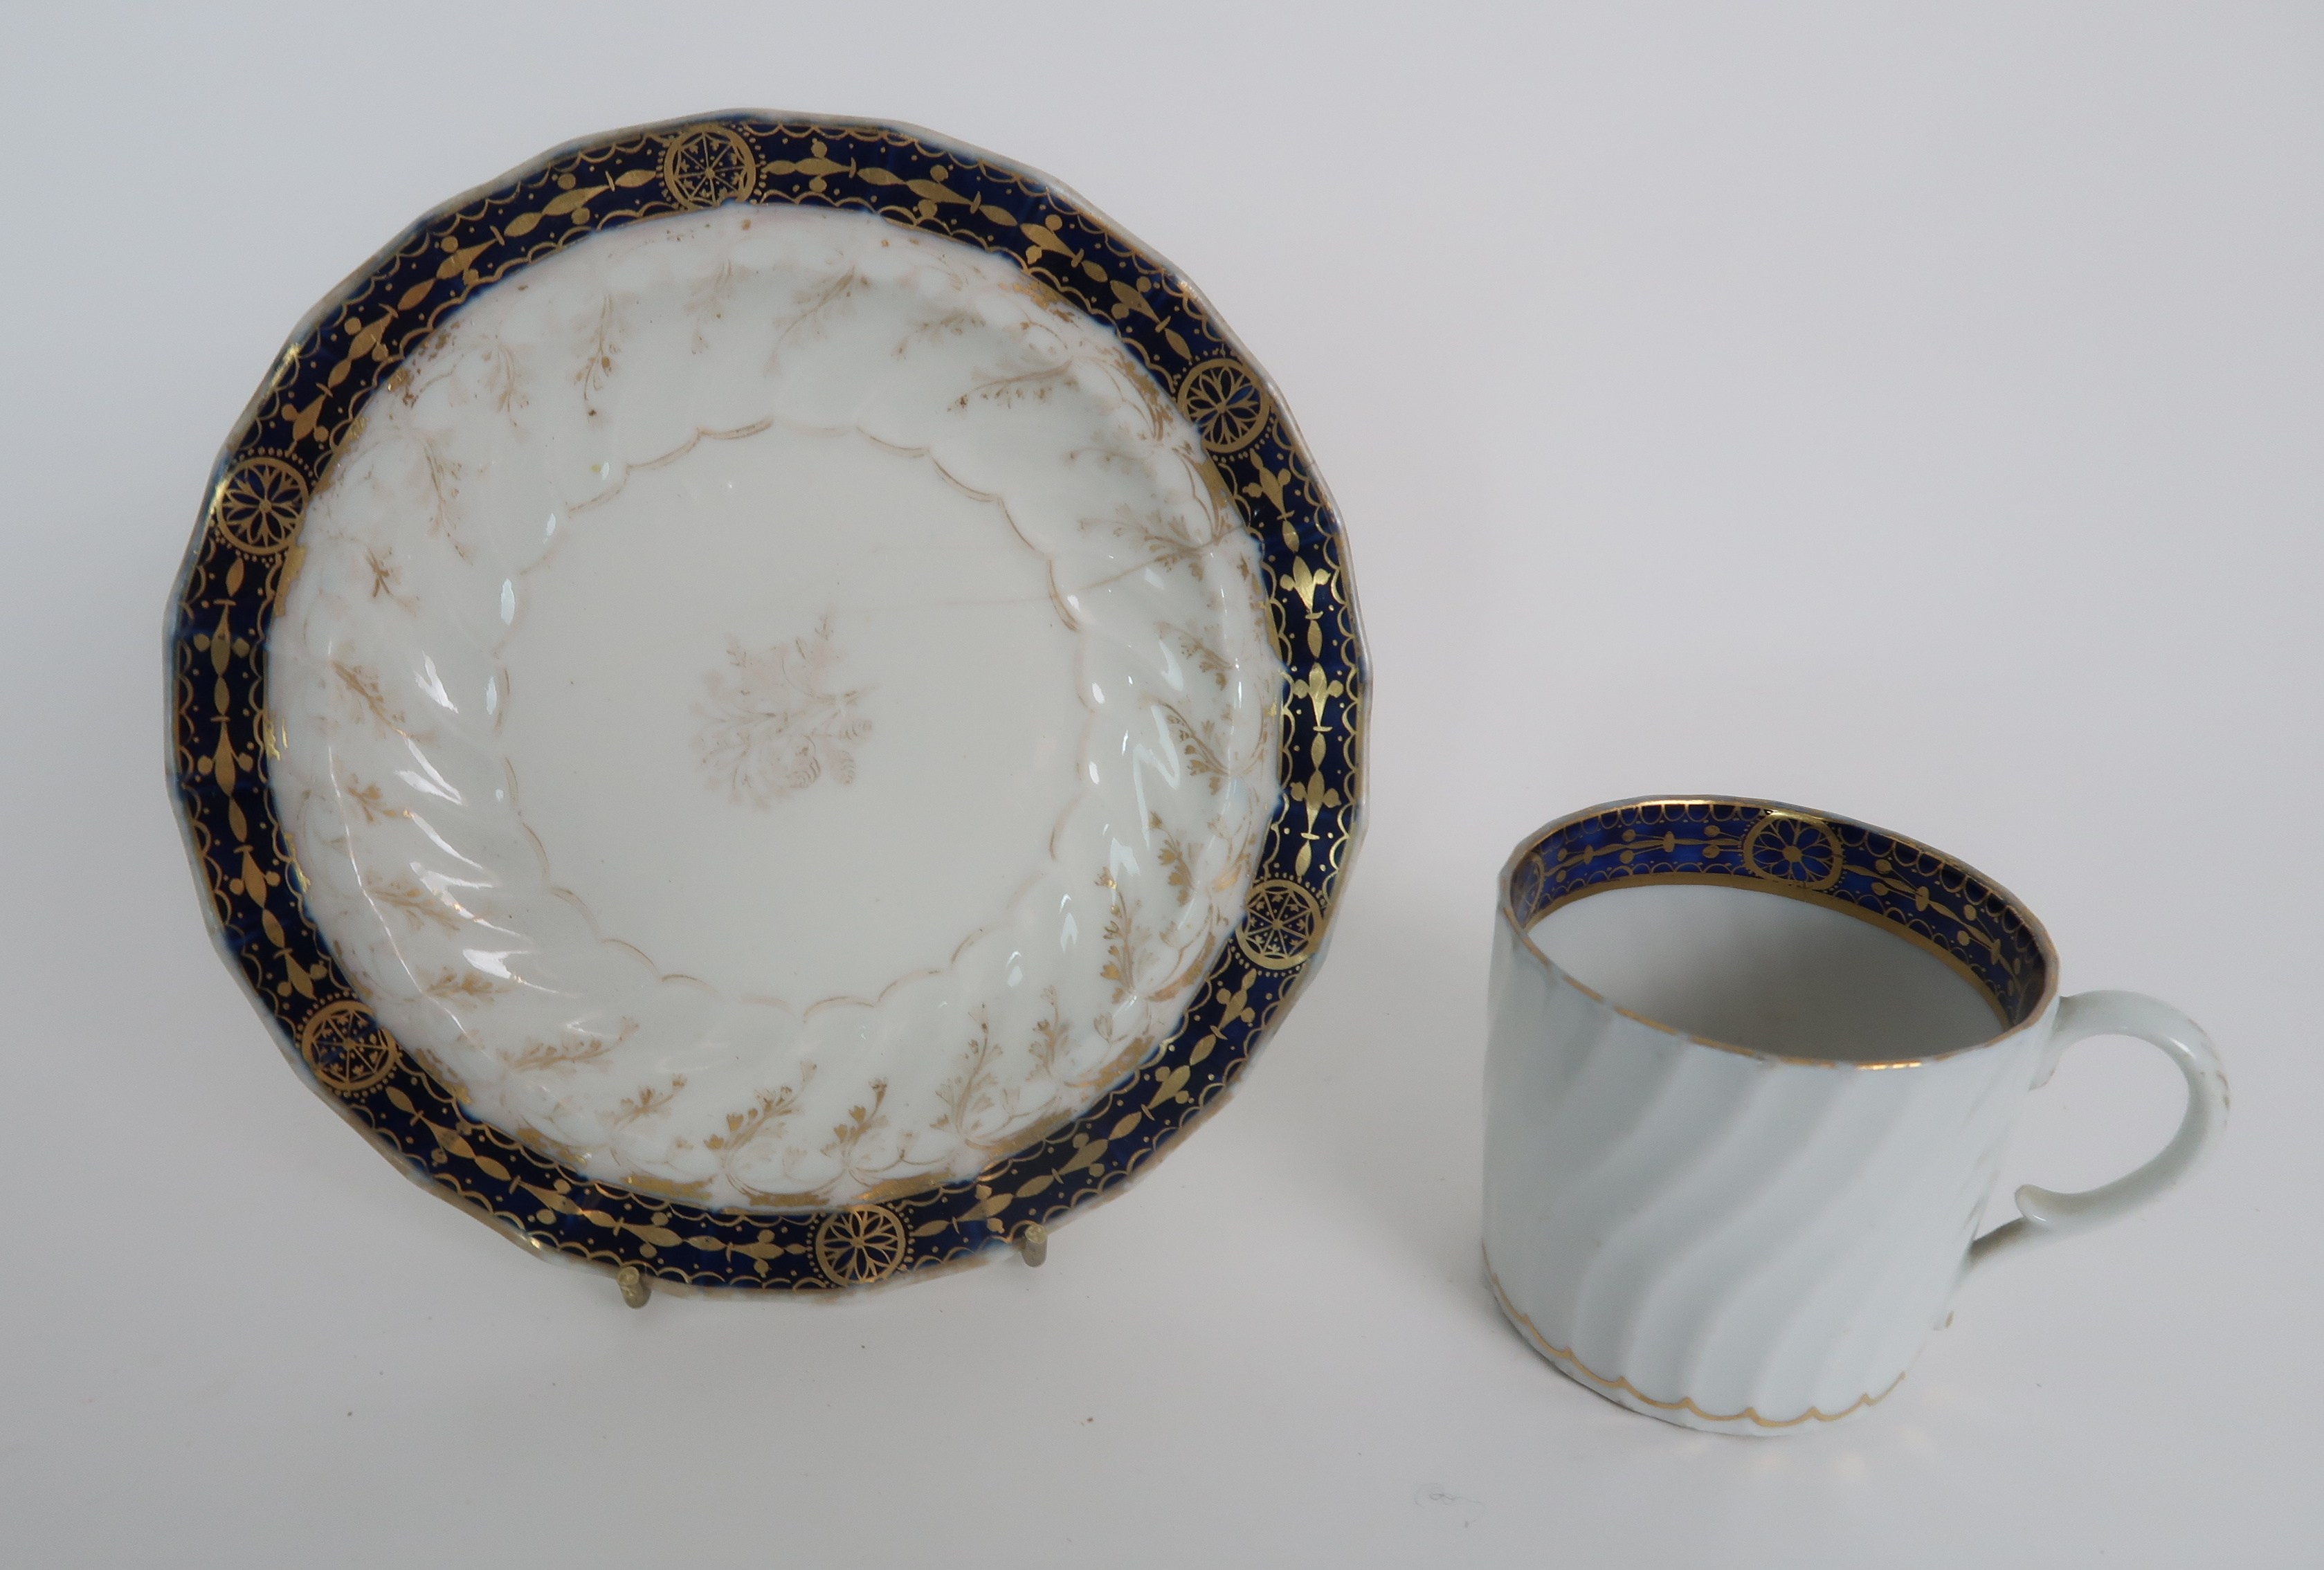 A COLLECTION OF 19TH CENTURY ENGLISH BLUE AND GILT DECORATED TEA AND COFFEE WARES including a - Image 15 of 23